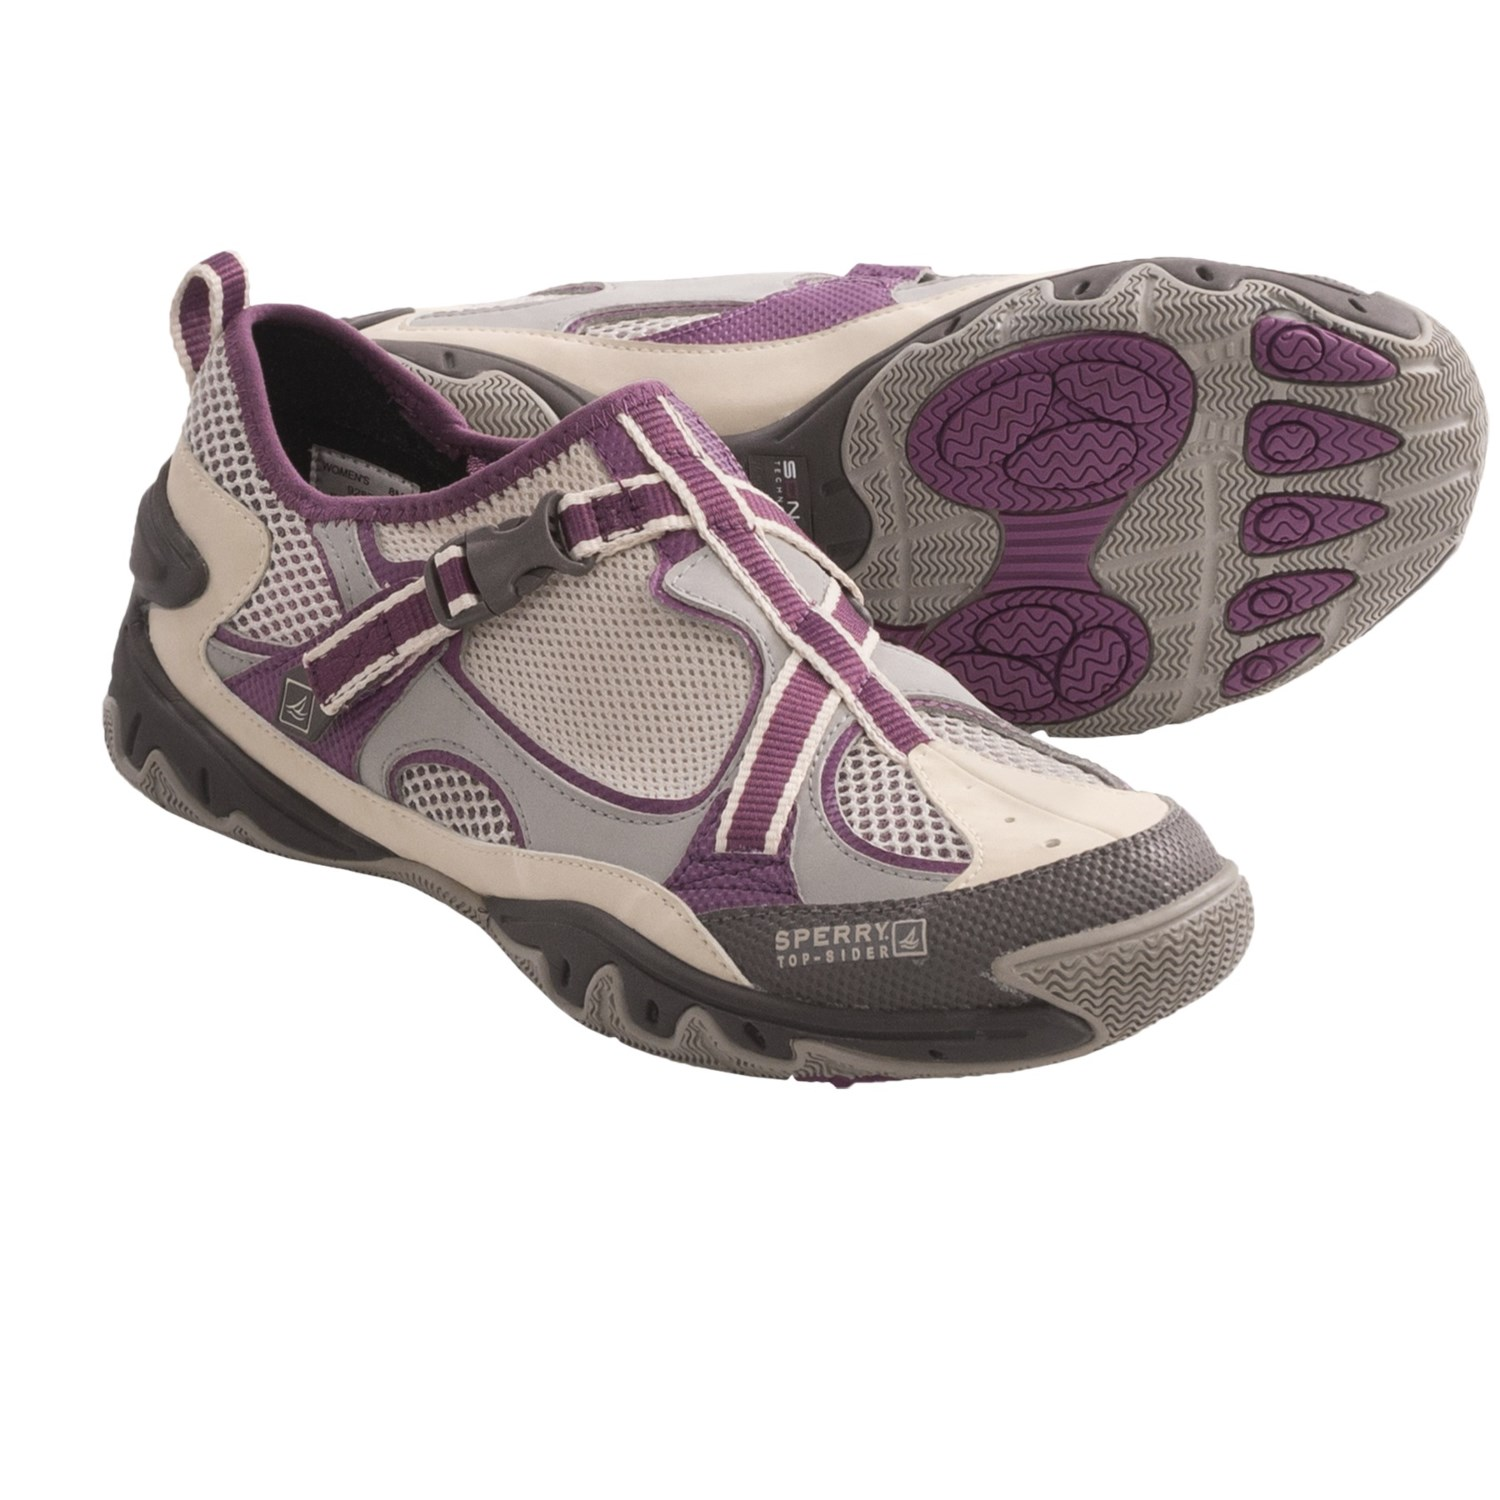 Sperry Top-Sider SON-R Ping Closed Water Shoes (For Women) in